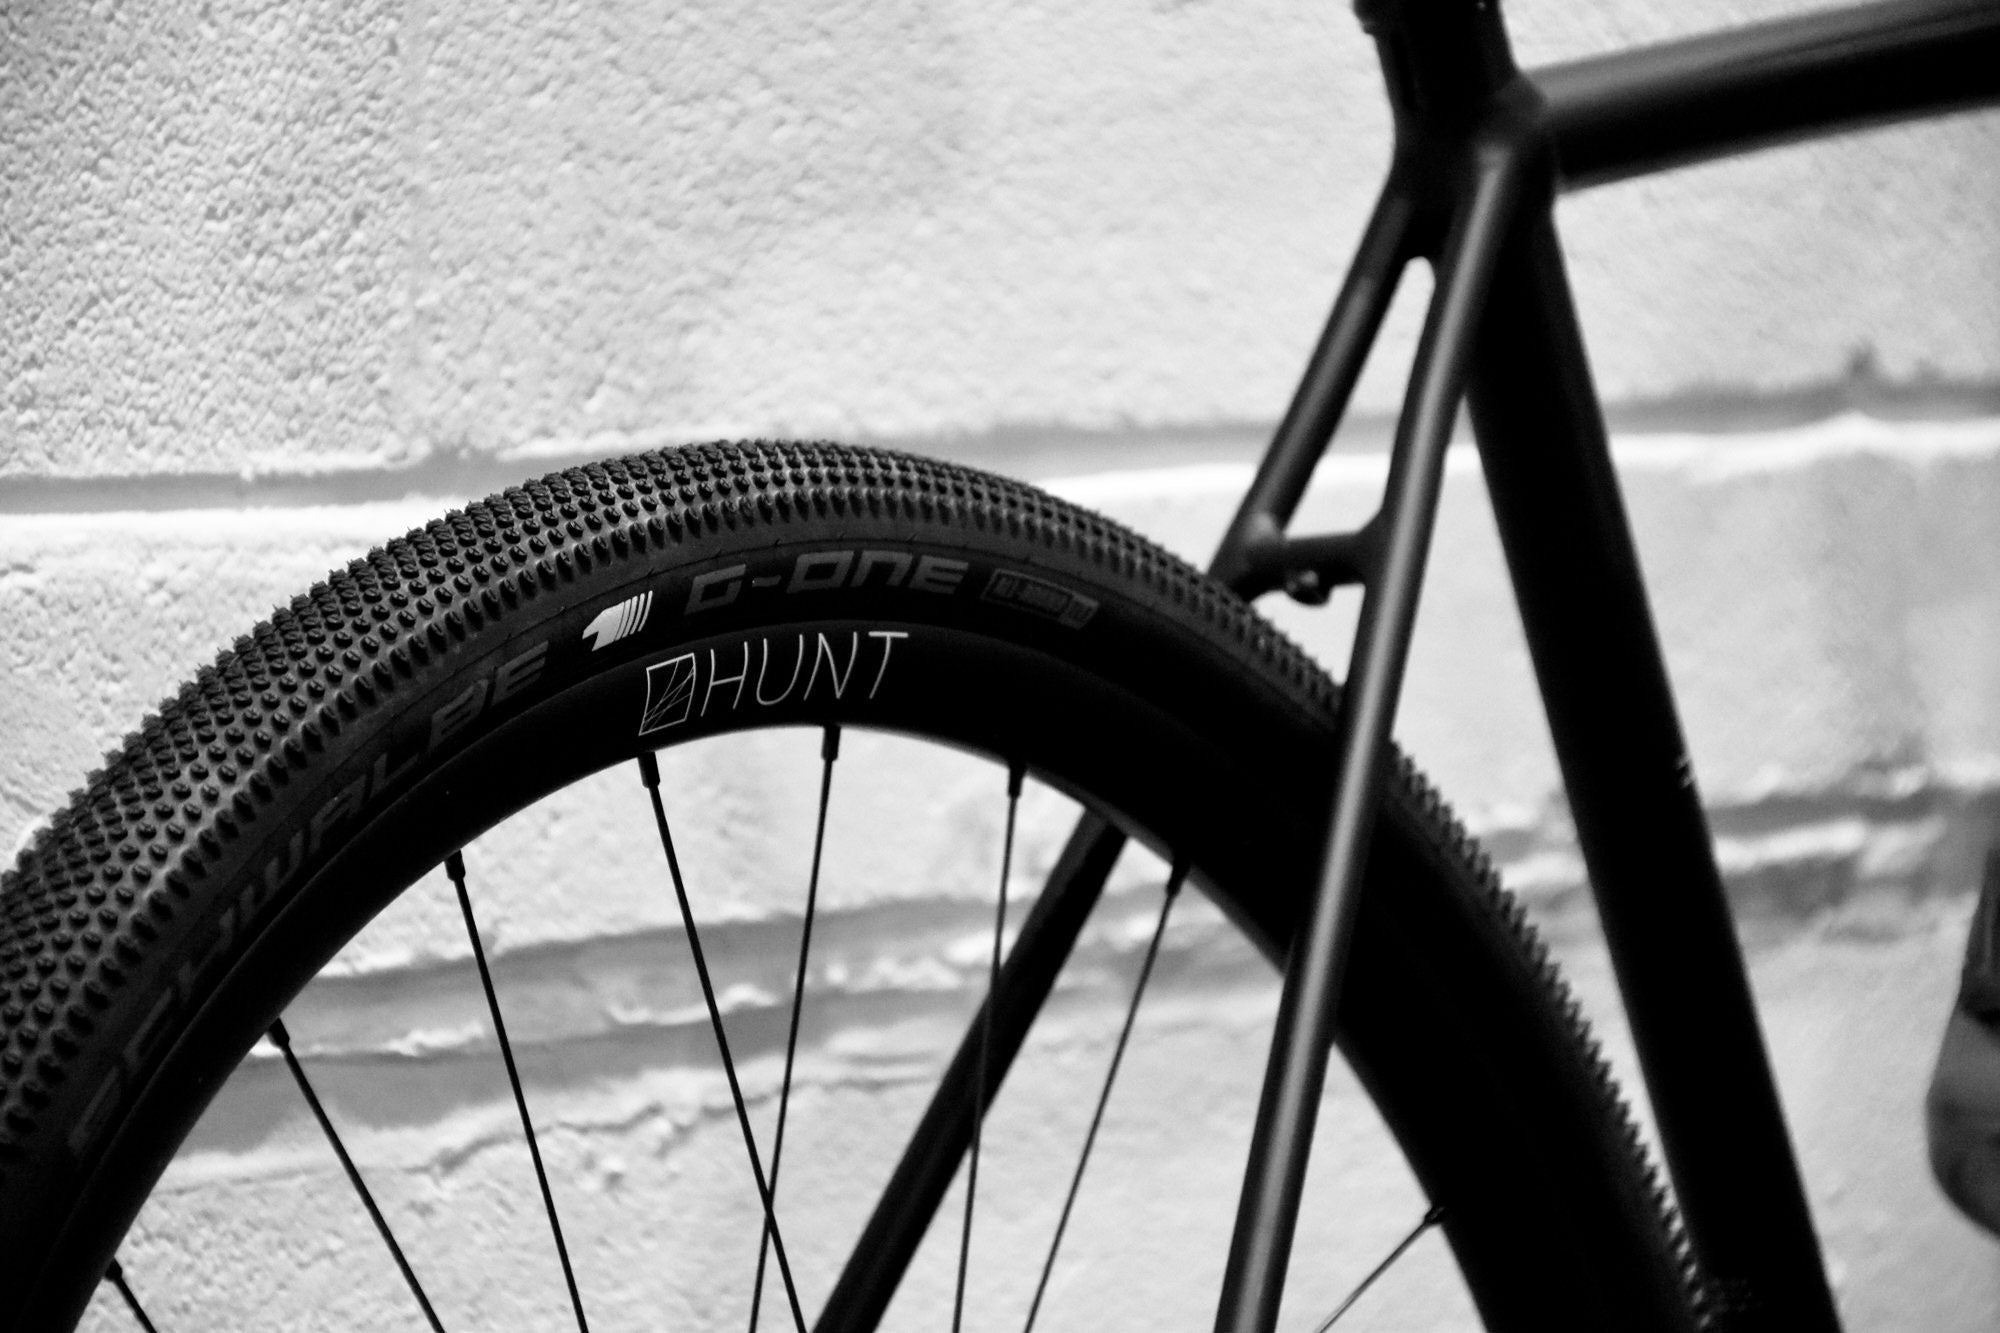 <h1>Weight</h1><i>The consequence of the fanatic attention to detail is a low 1425g wheelset weight, and dependable reliability for many adventures to come. Acceleration and climbing are massively improved over many of the stock wheels supplied on road/gravel/CX disc brake bikes.</i>